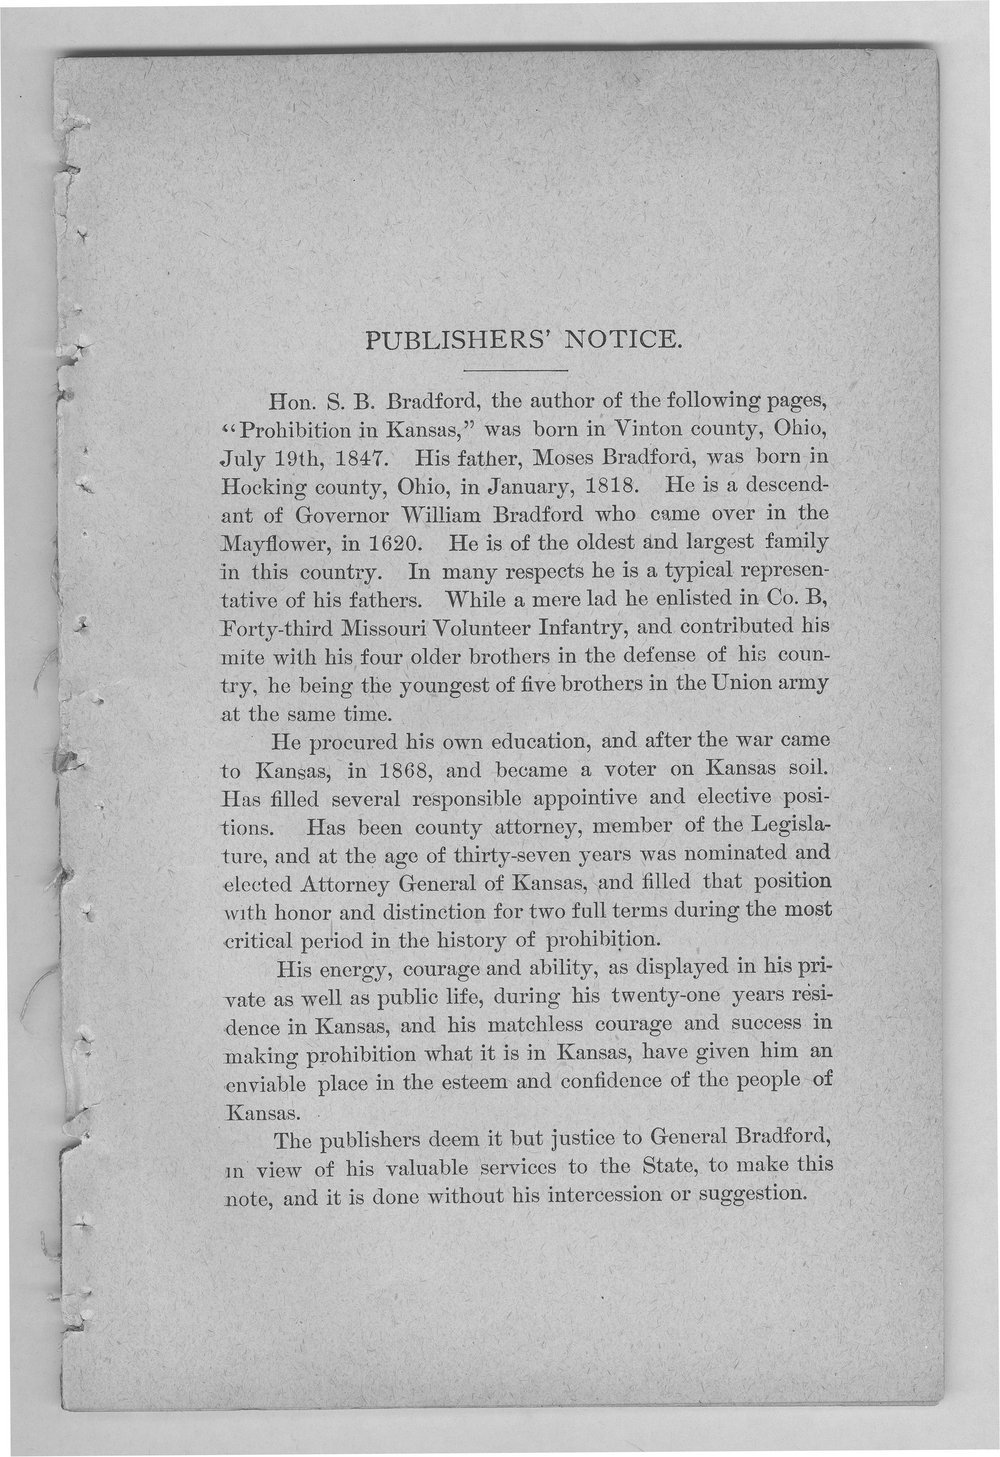 Prohibition in Kansas and the Prohibitory Law - Publishers' Notice